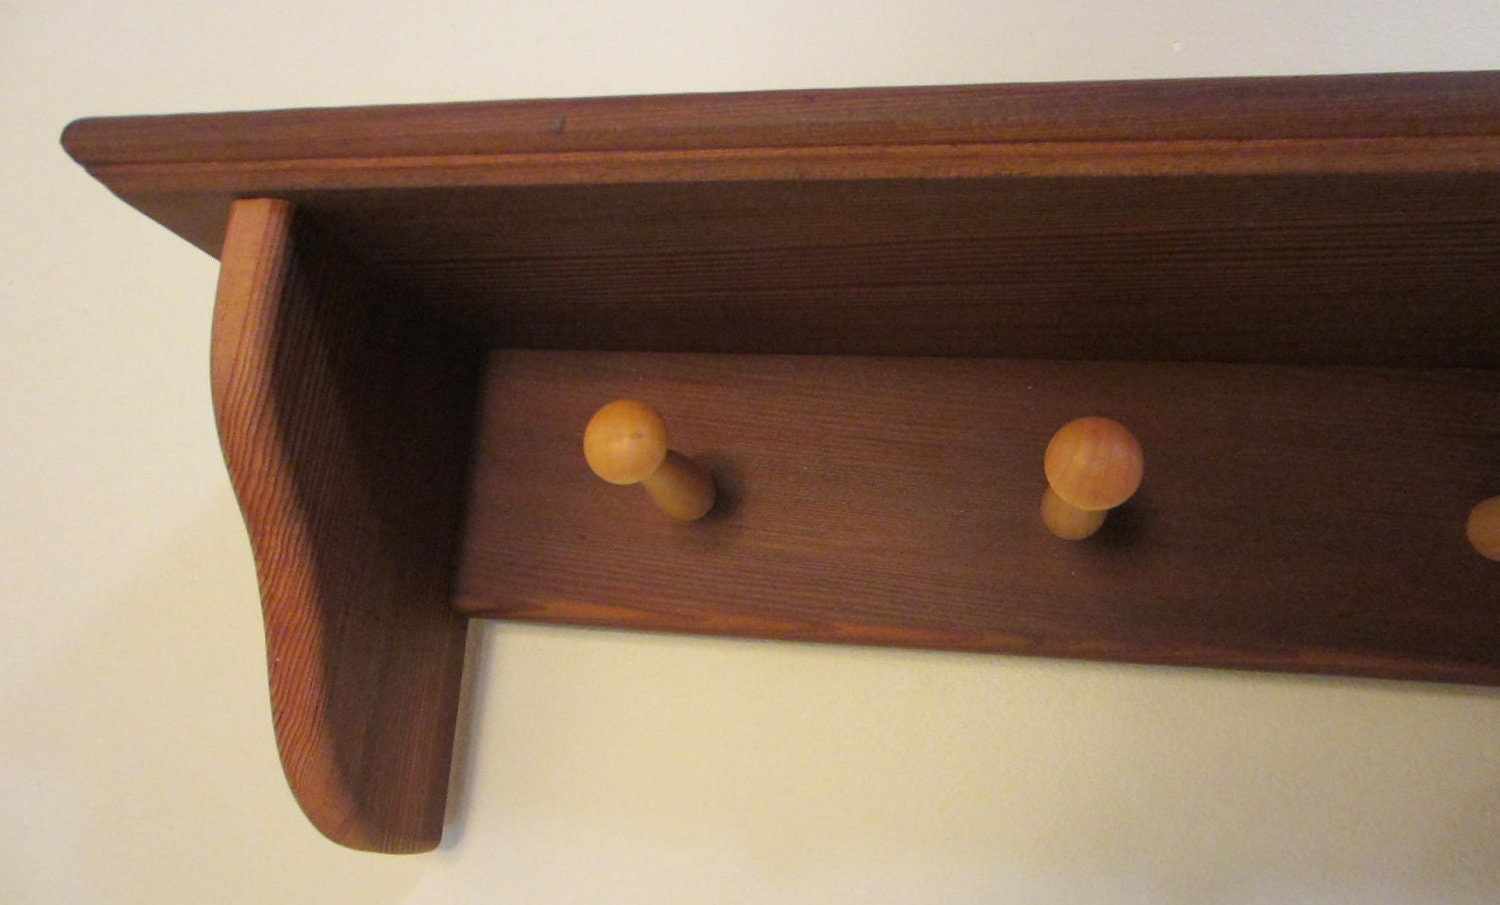 Mahgogany Coat Rack Wall Mounted Coat Hook Shaker Rail